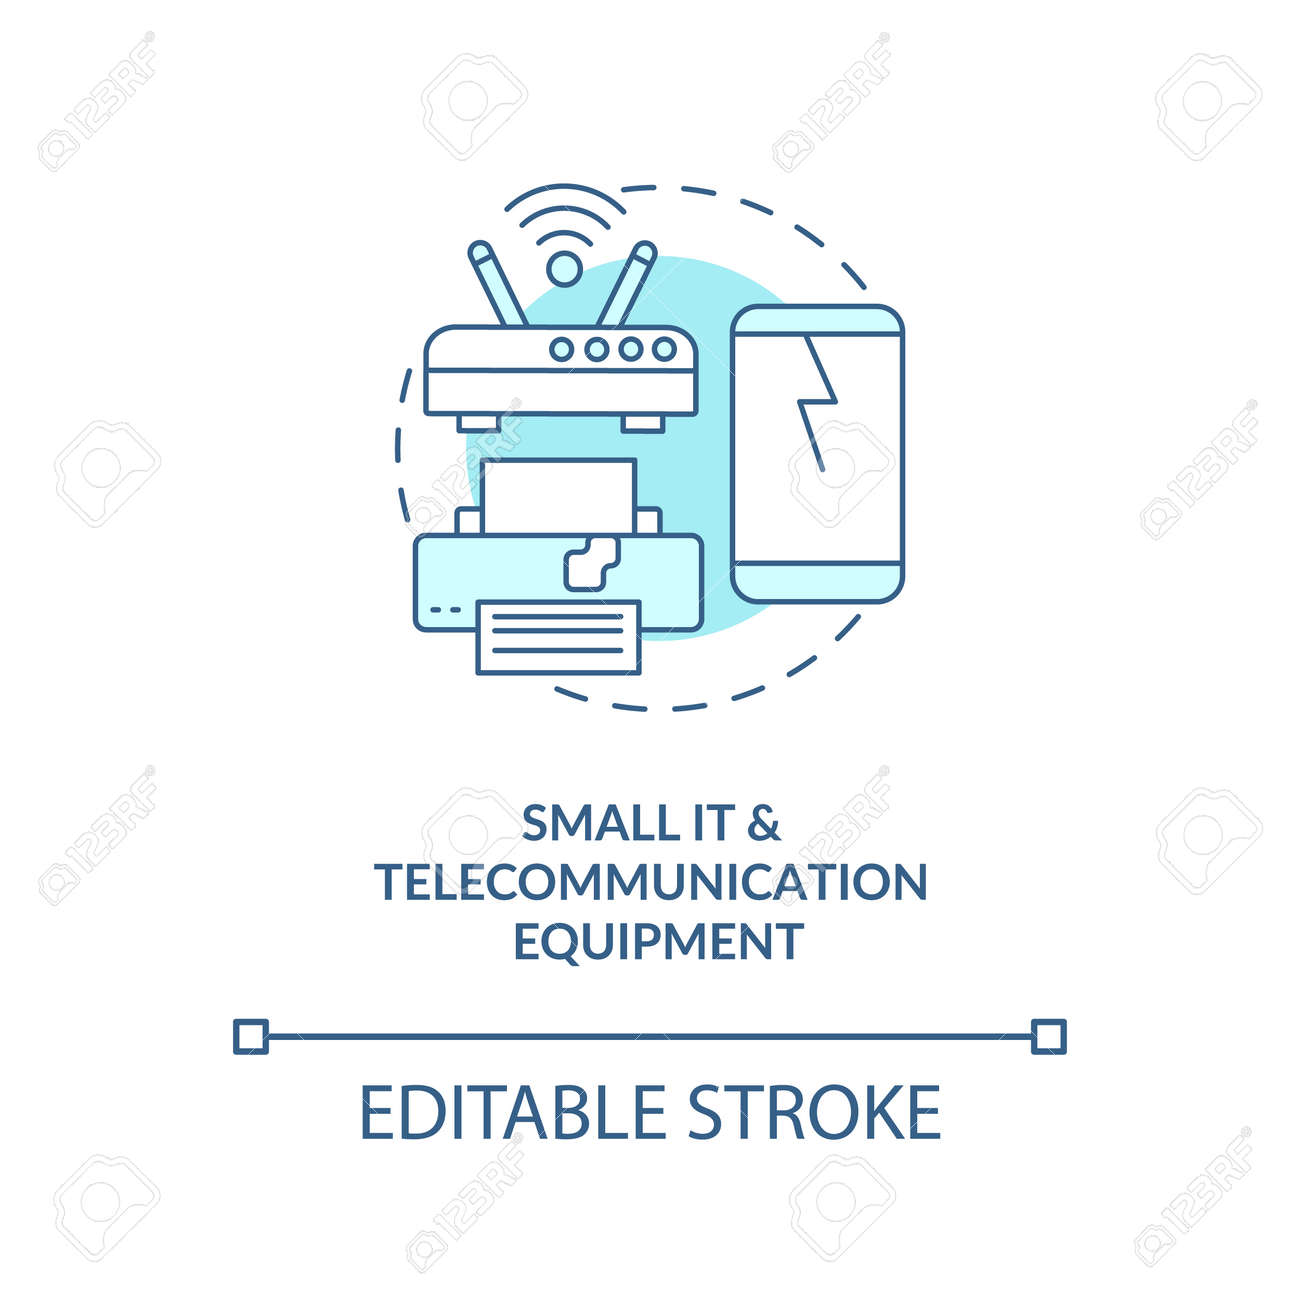 Small IT and telecommunication equipment concept icon. E-waste category idea thin line illustration. Copying equipment and fax machines. Vector isolated outline RGB color drawing. Editable stroke - 168568154